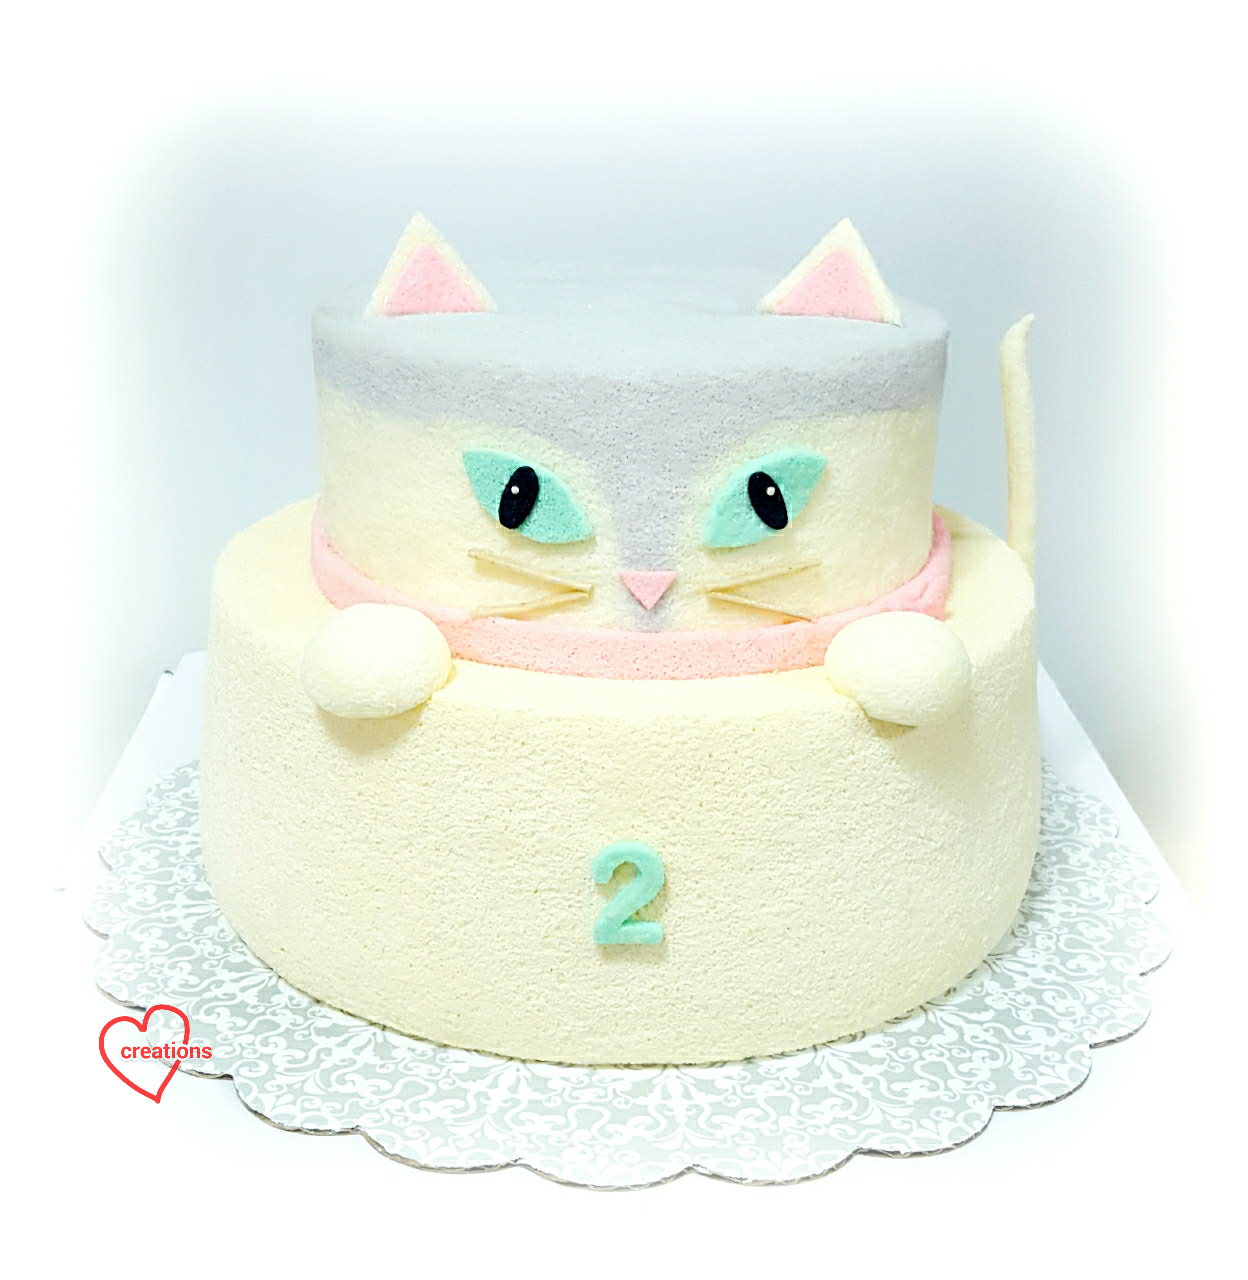 Loving Creations For You 3d Cat 2 Tier Lemon Chiffon Cake Reduced